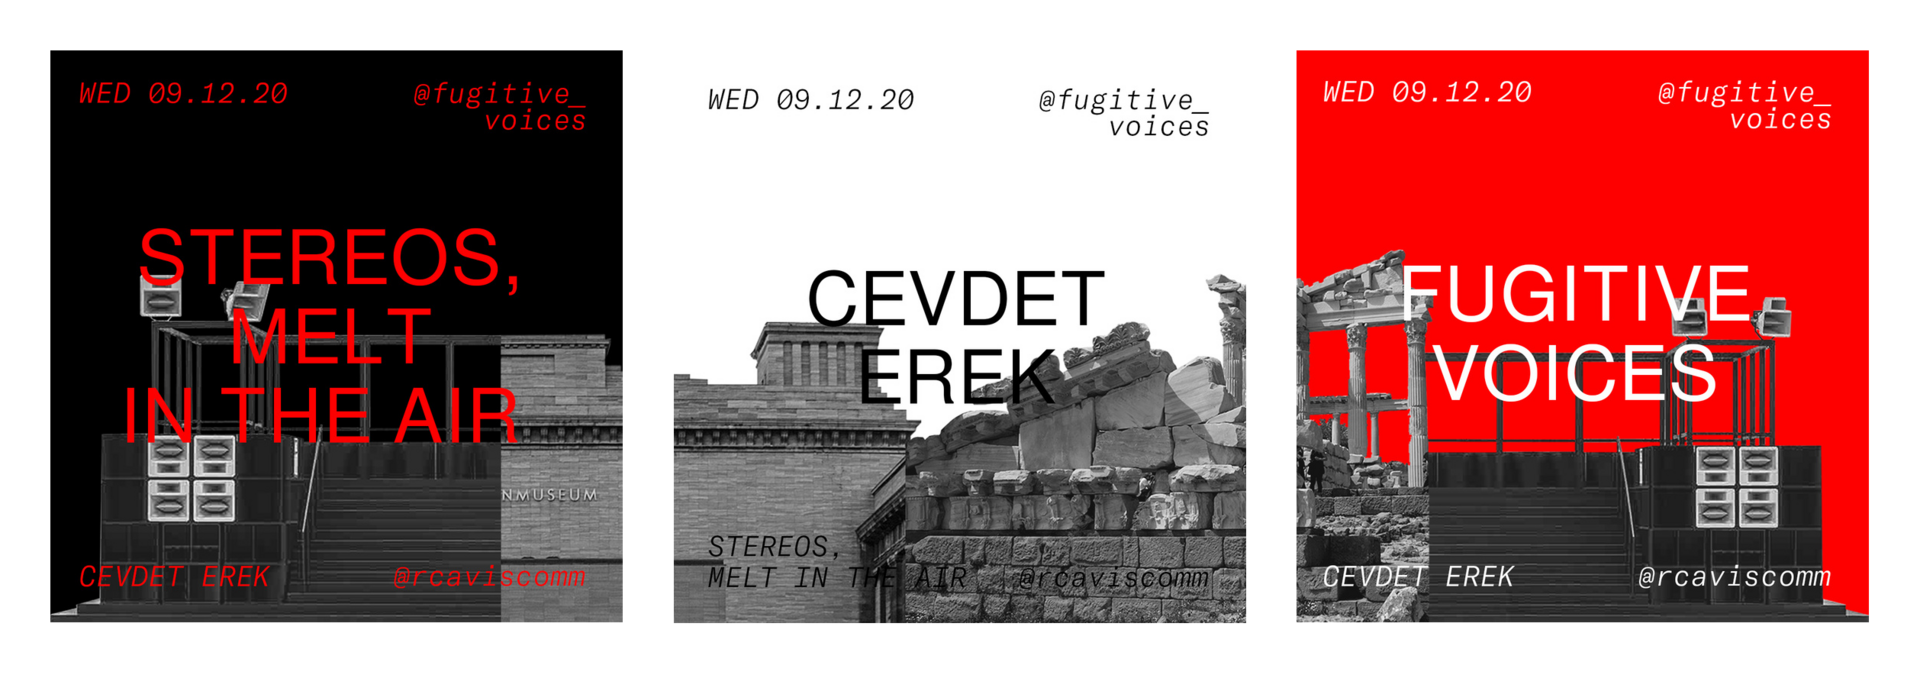 Visuals for Cevdet Erek. In collaboration with Myrna Marianovits.